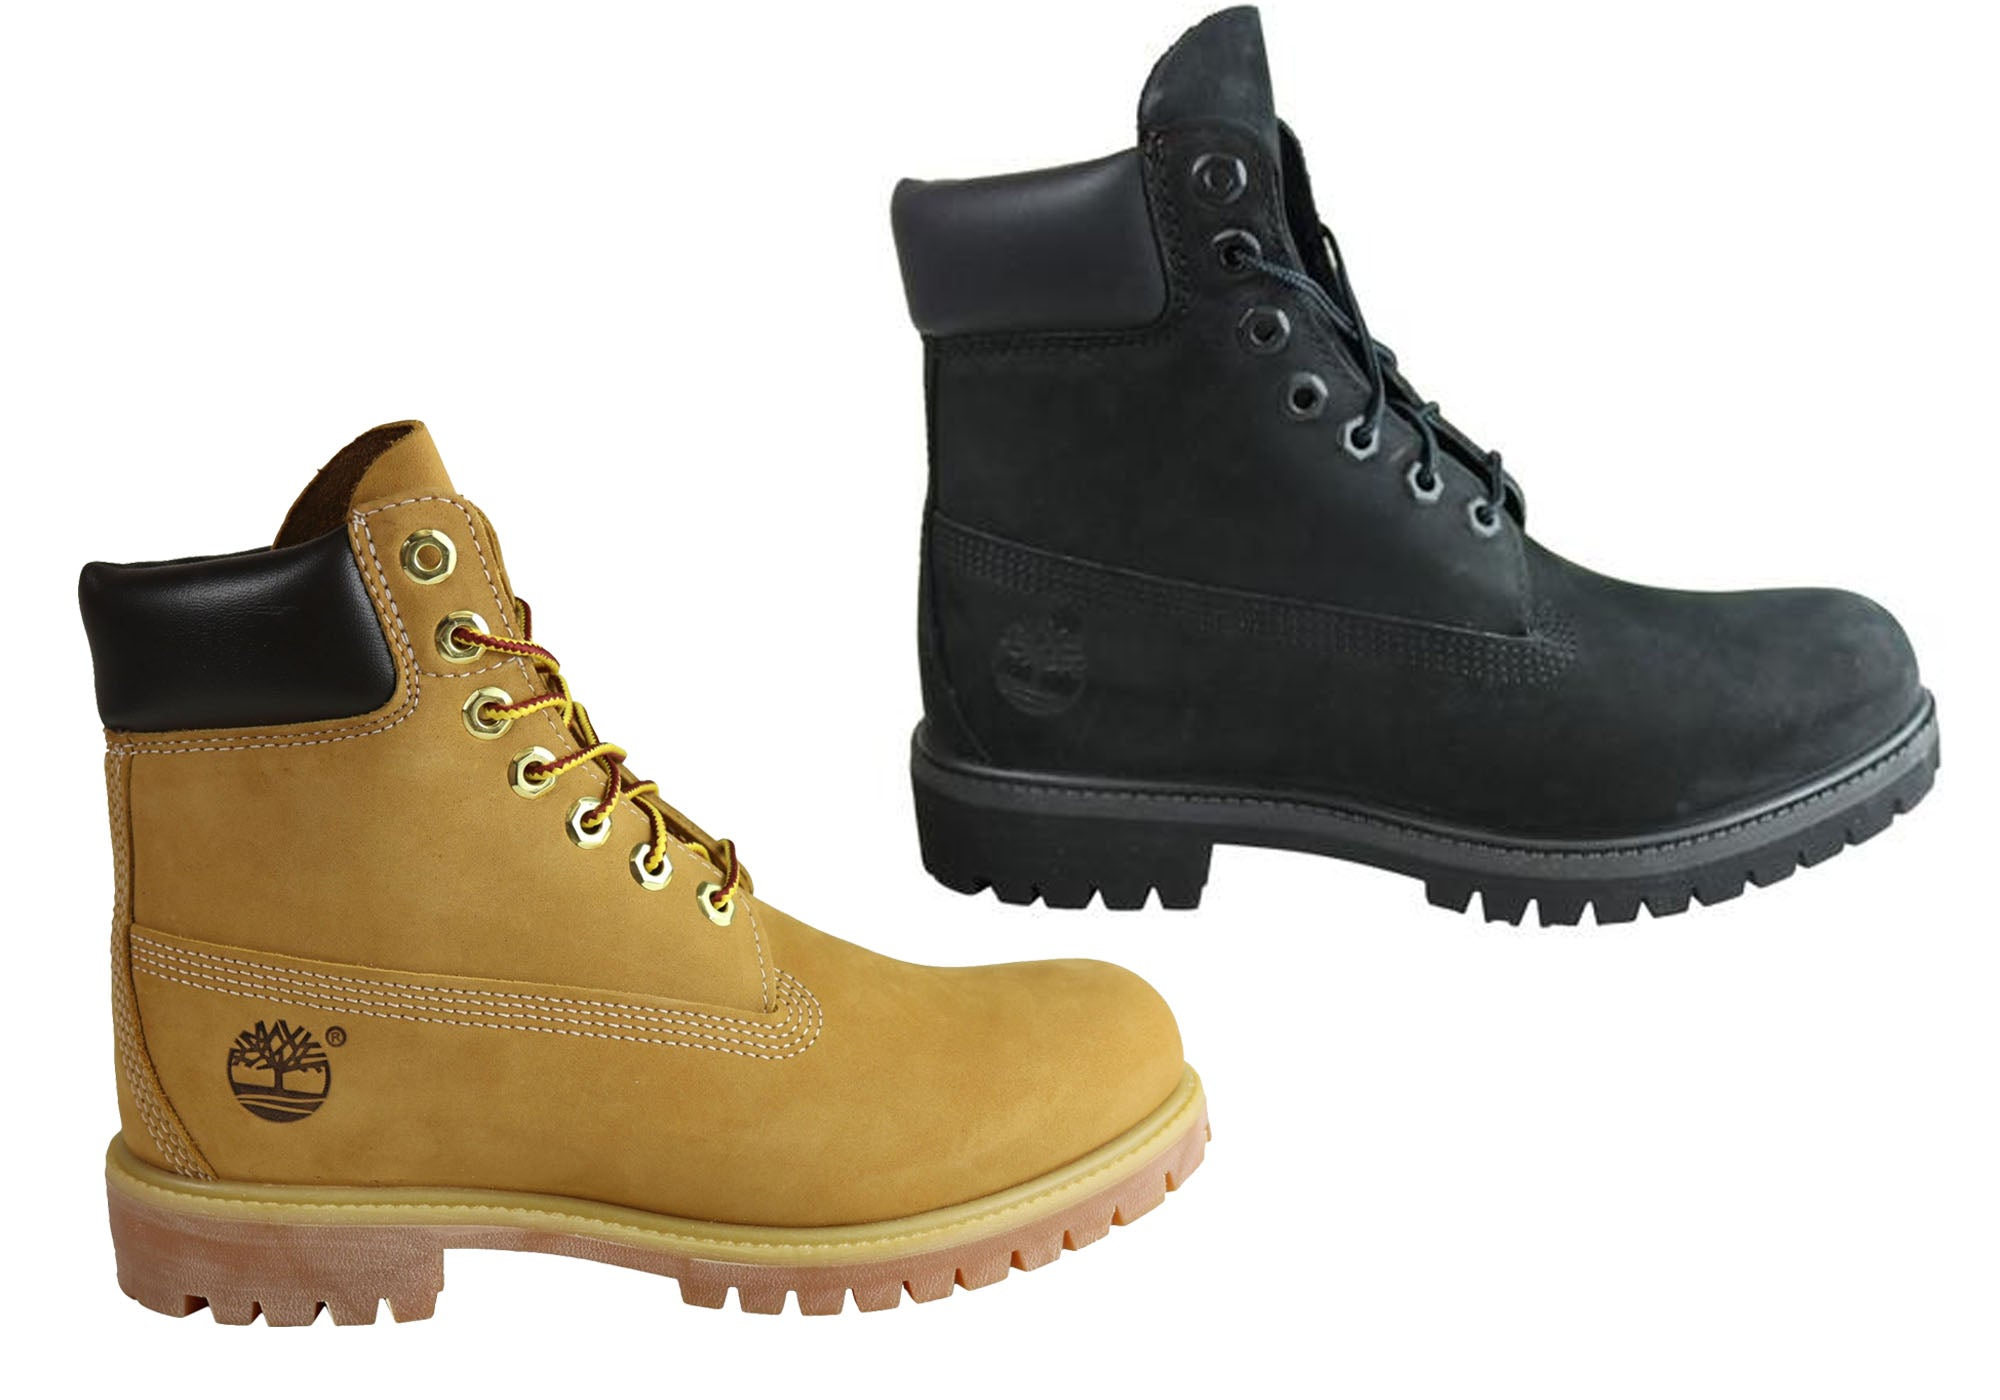 NEW-TIMBERLAND-MENS-COMFORTABLE-LACE-UP-6-INCH-PREMIUM-WATERPROOF-BOOTS thumbnail 2